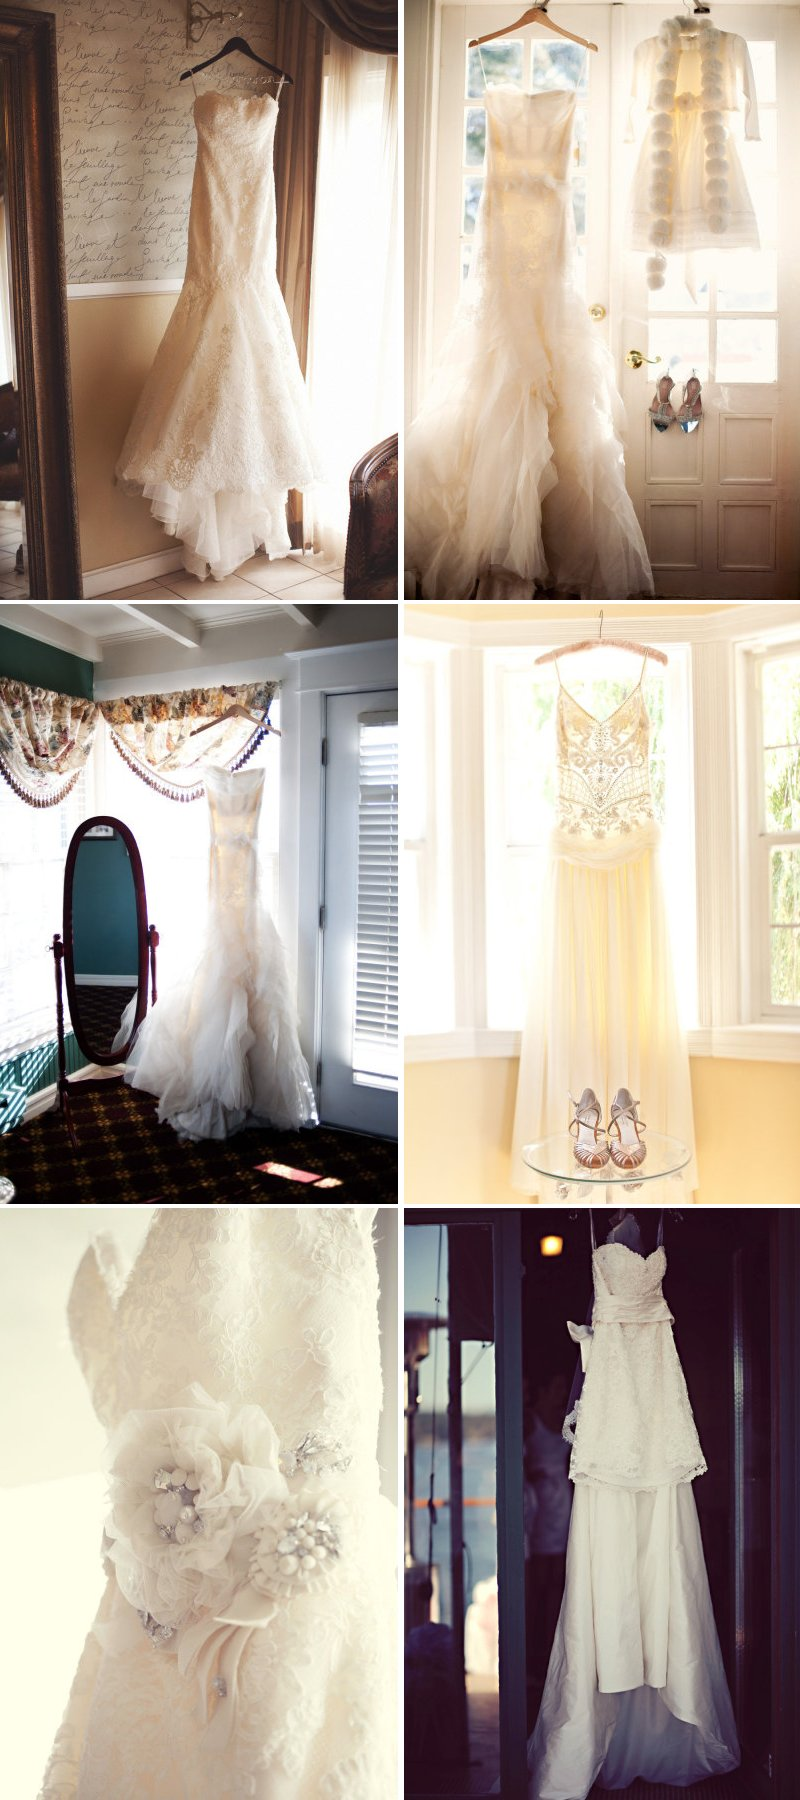 Wedding-photography-must-have-detail-shots-for-brides-hanging-wedding-dress-1.full